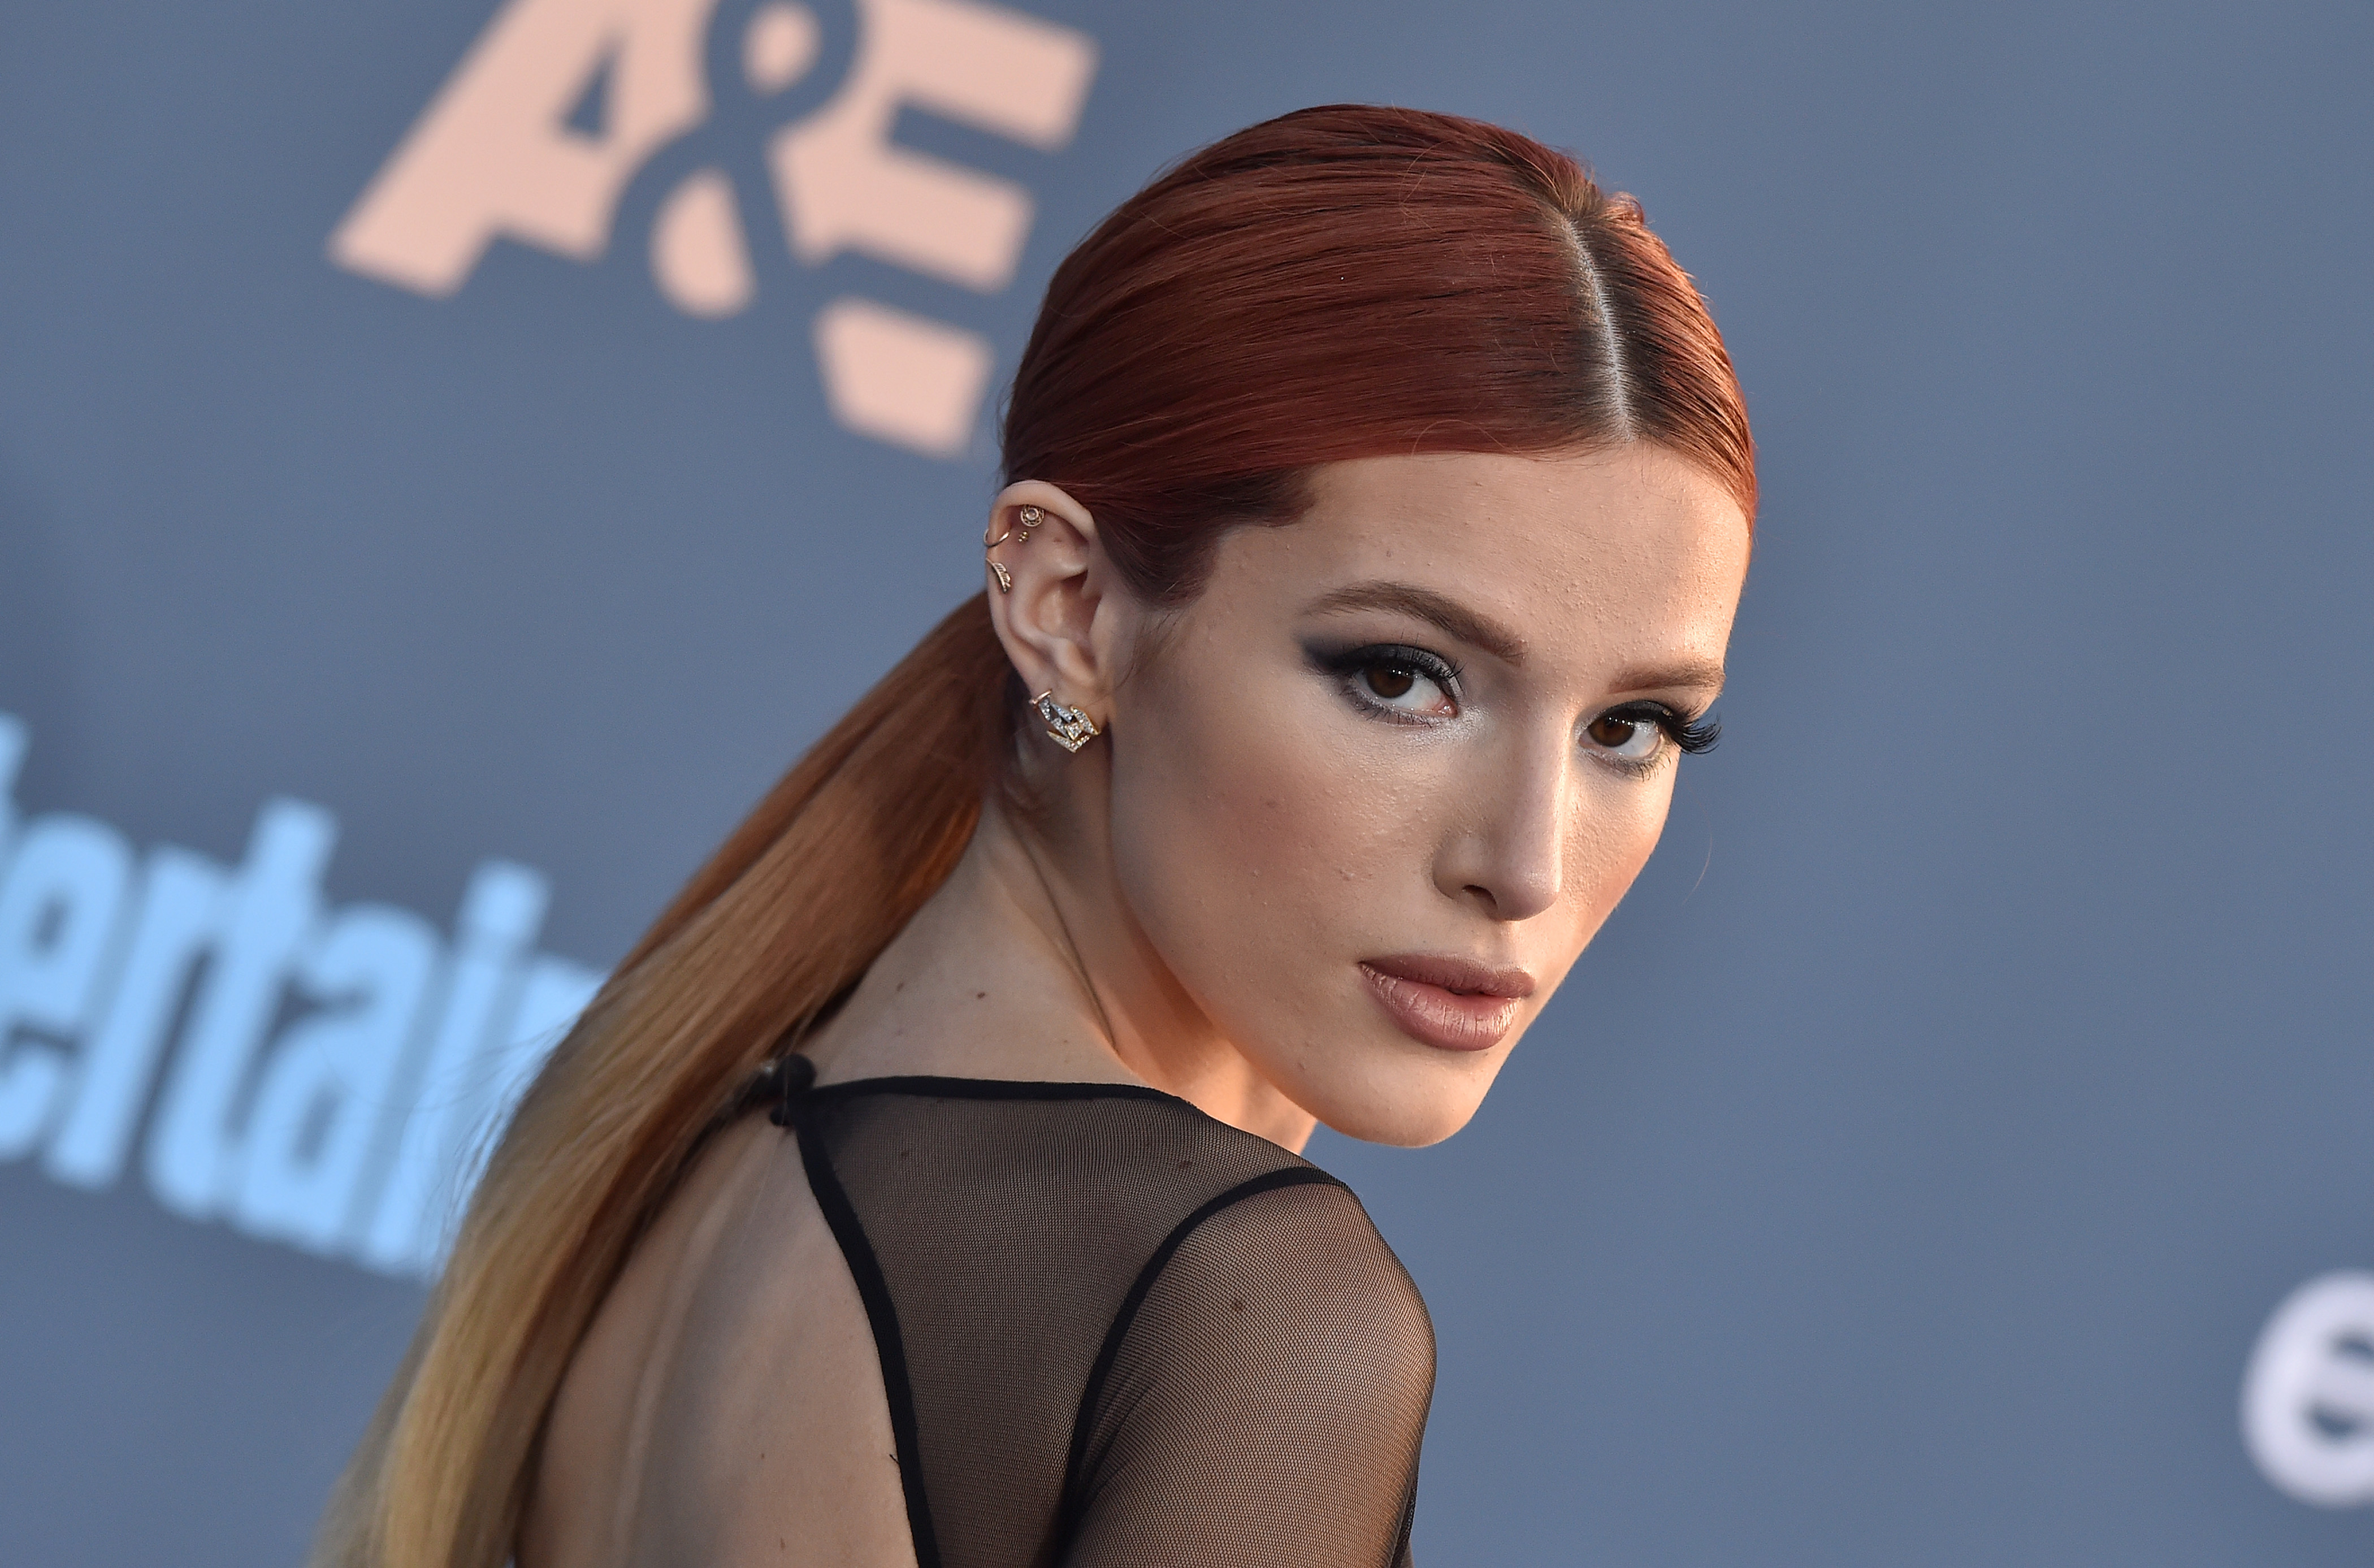 So This Is Why Bella Thorne Keeps Dyeing Her Hair Different Colors